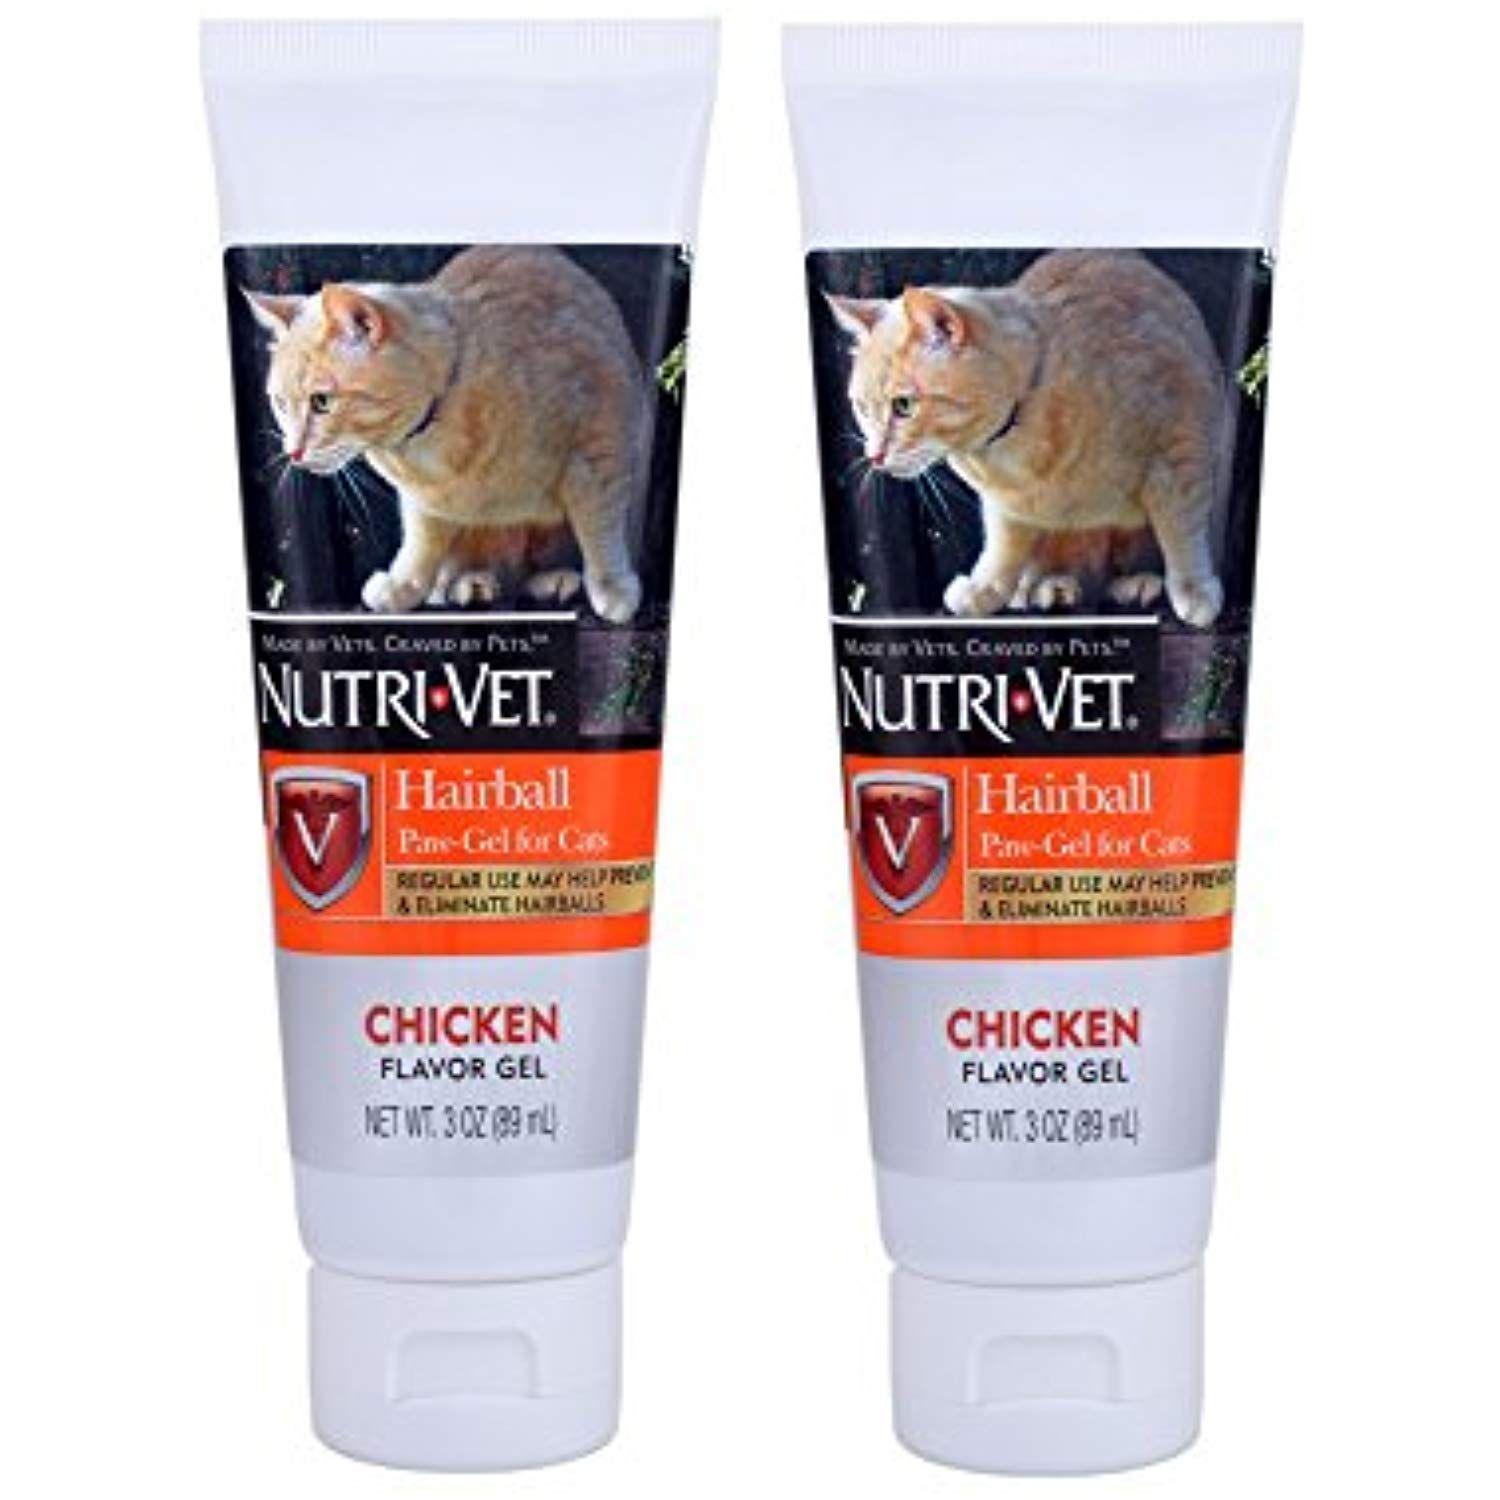 Nutri Vet Feline Natural Oil Hairball Paw Gel Chicken Flavor 3oz 2 Pack Click On The Image For Additional Details Th Chicken Flavors Natural Oils Feline